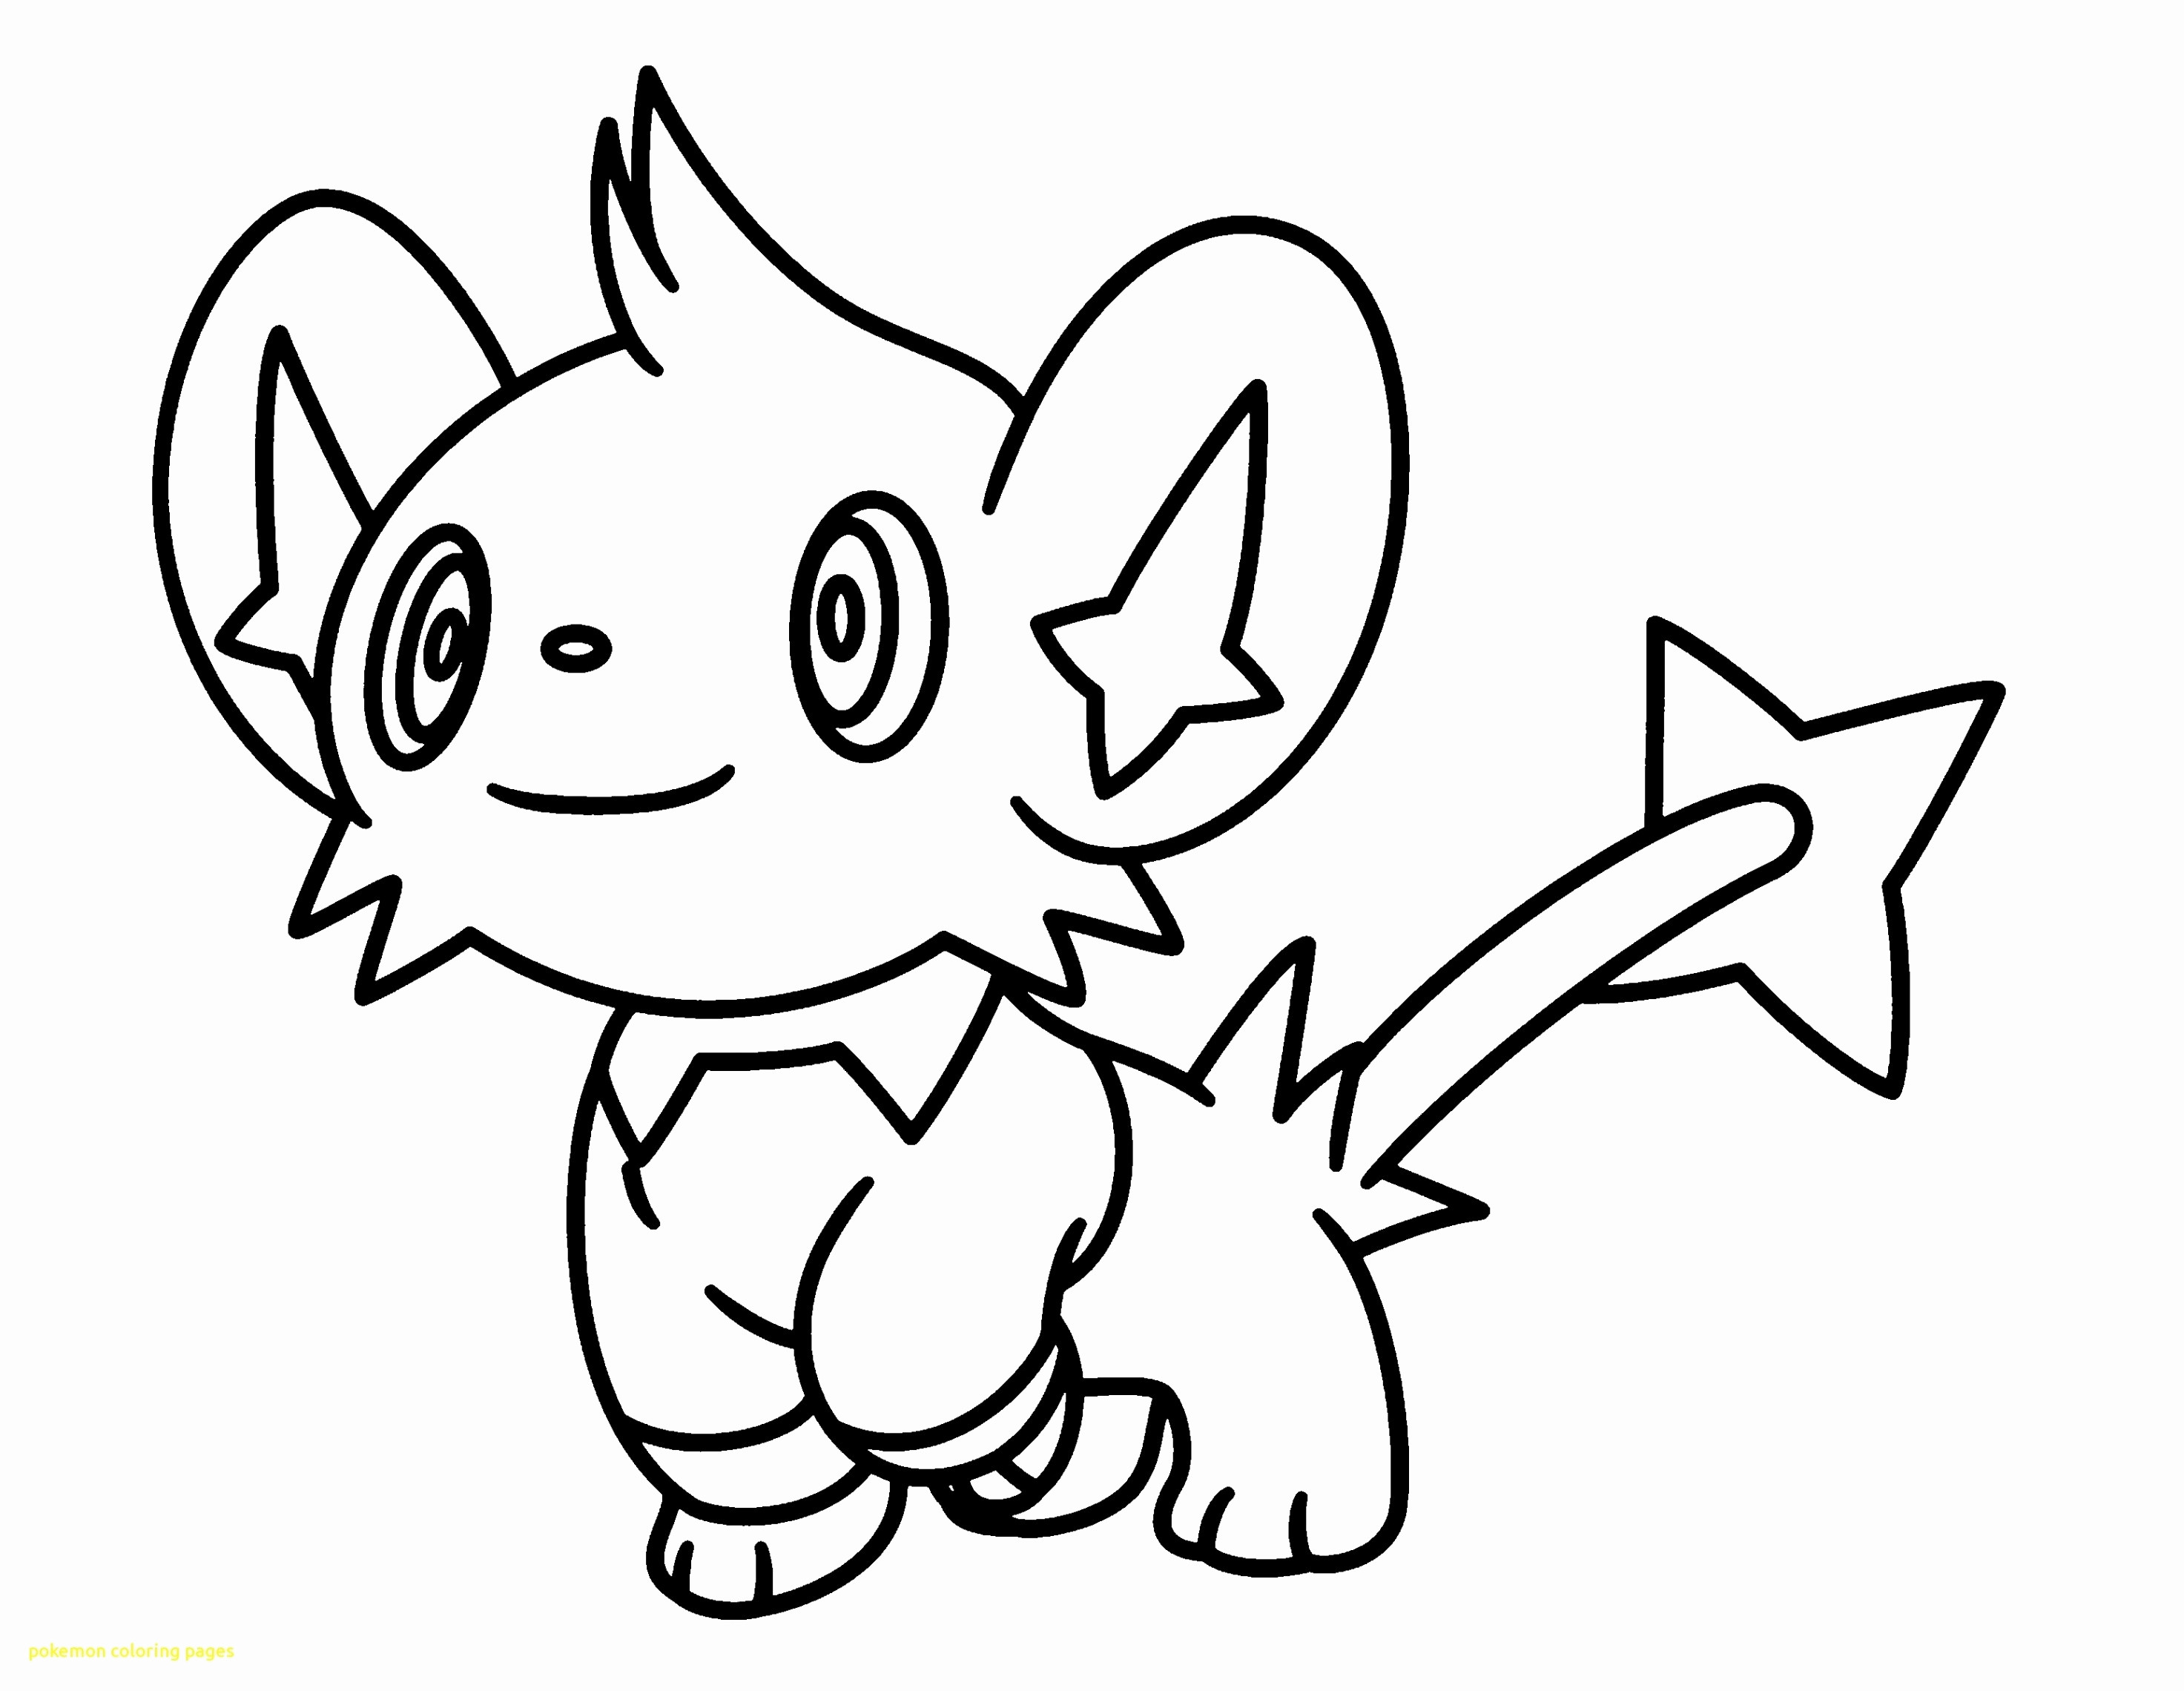 Free Printable Pokemon Coloring Pages Free Printable Coloring Pages Of Pokemon Black And White